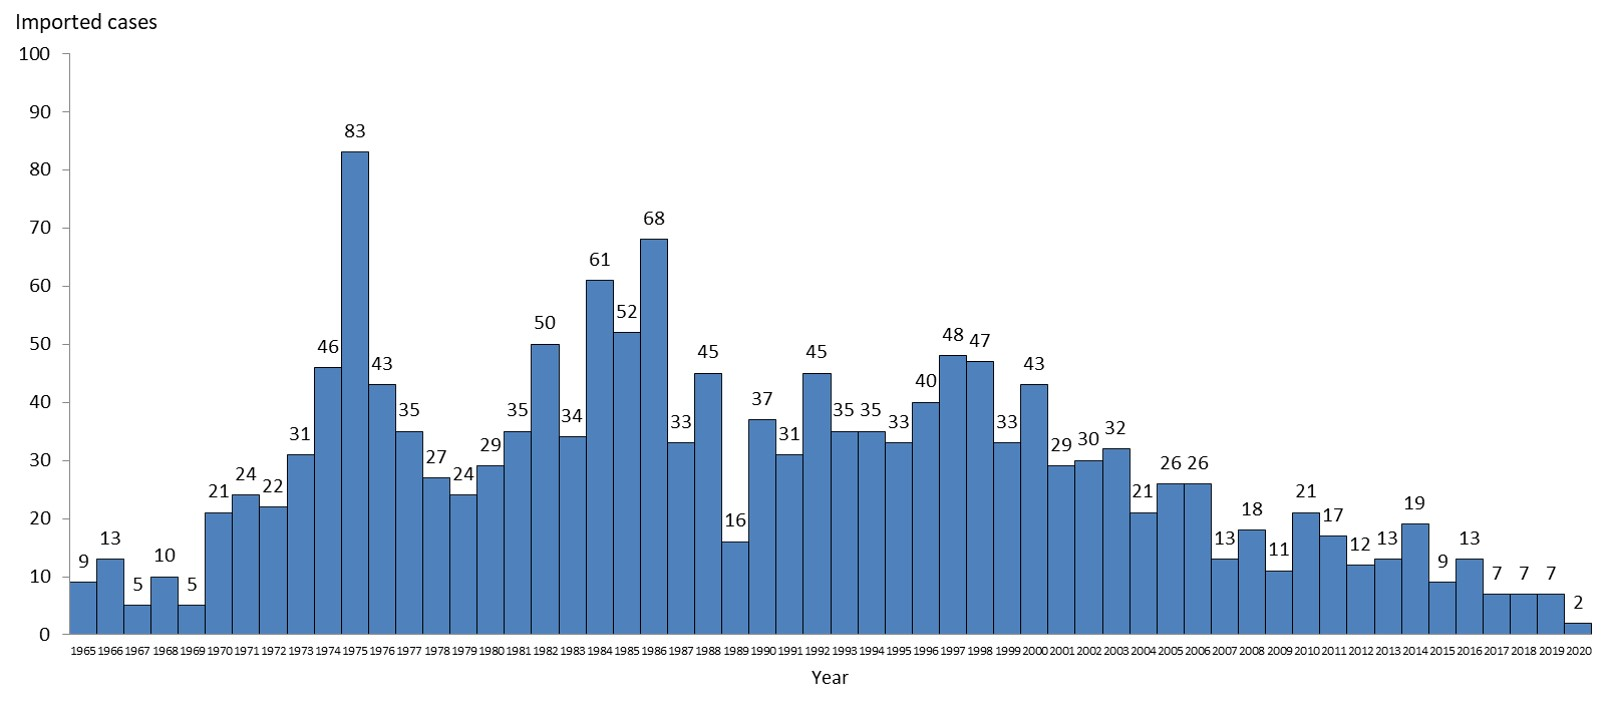 Figure: Imported malaria cases in Taiwan, 1965-2020.